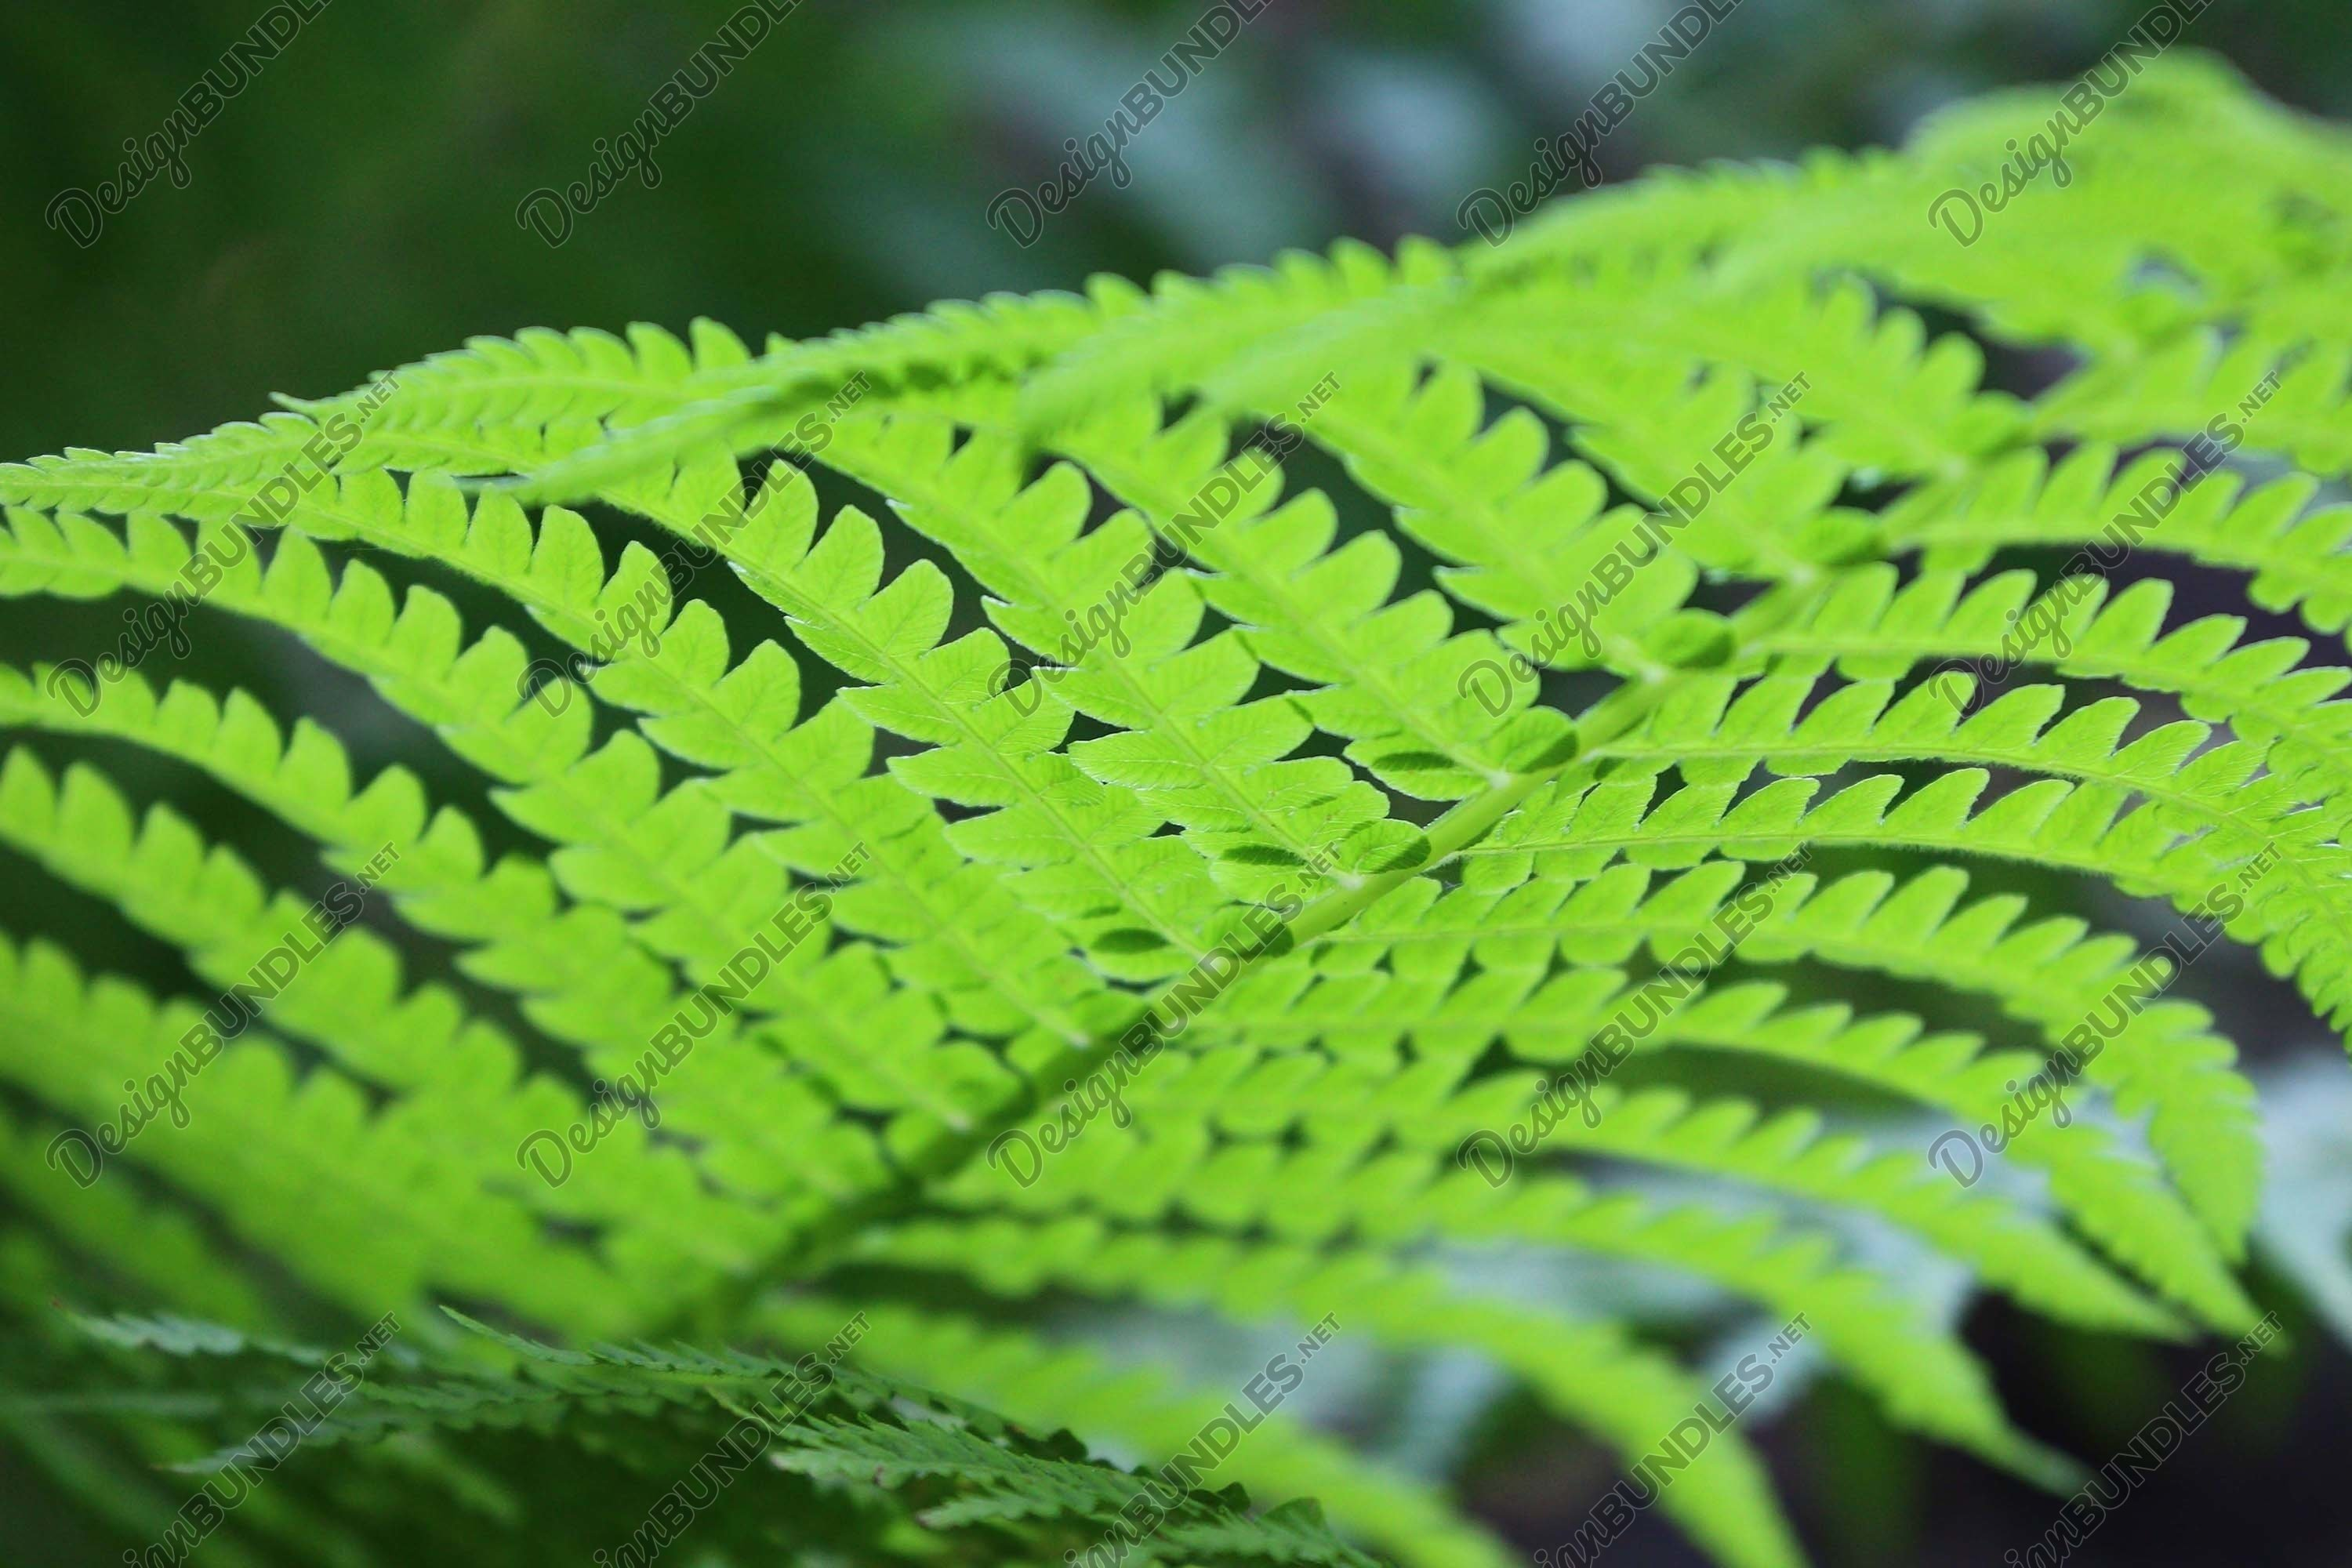 Stock Photo - Close-Up Of Fern Leaves example image 1